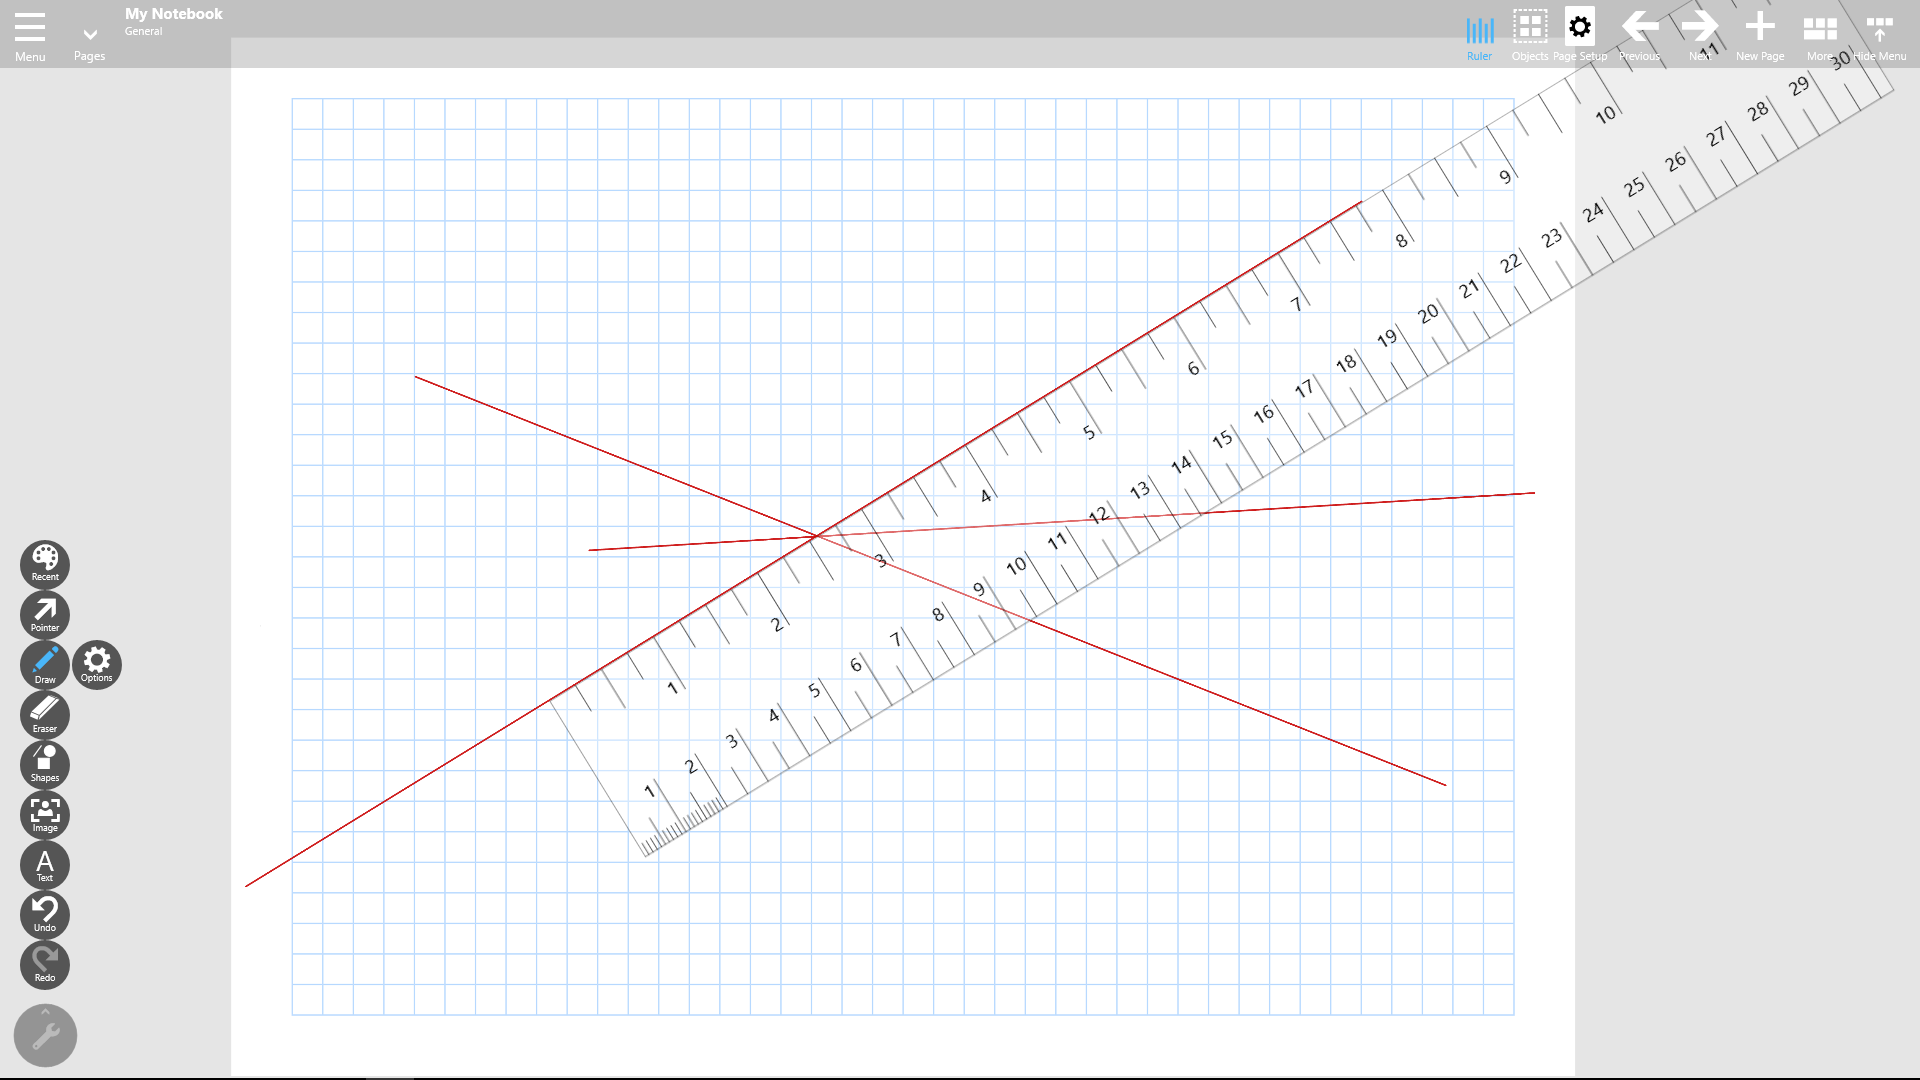 Drawing Lines With A Ruler Ks : Notebook pro gets virtual rulers for digital paper